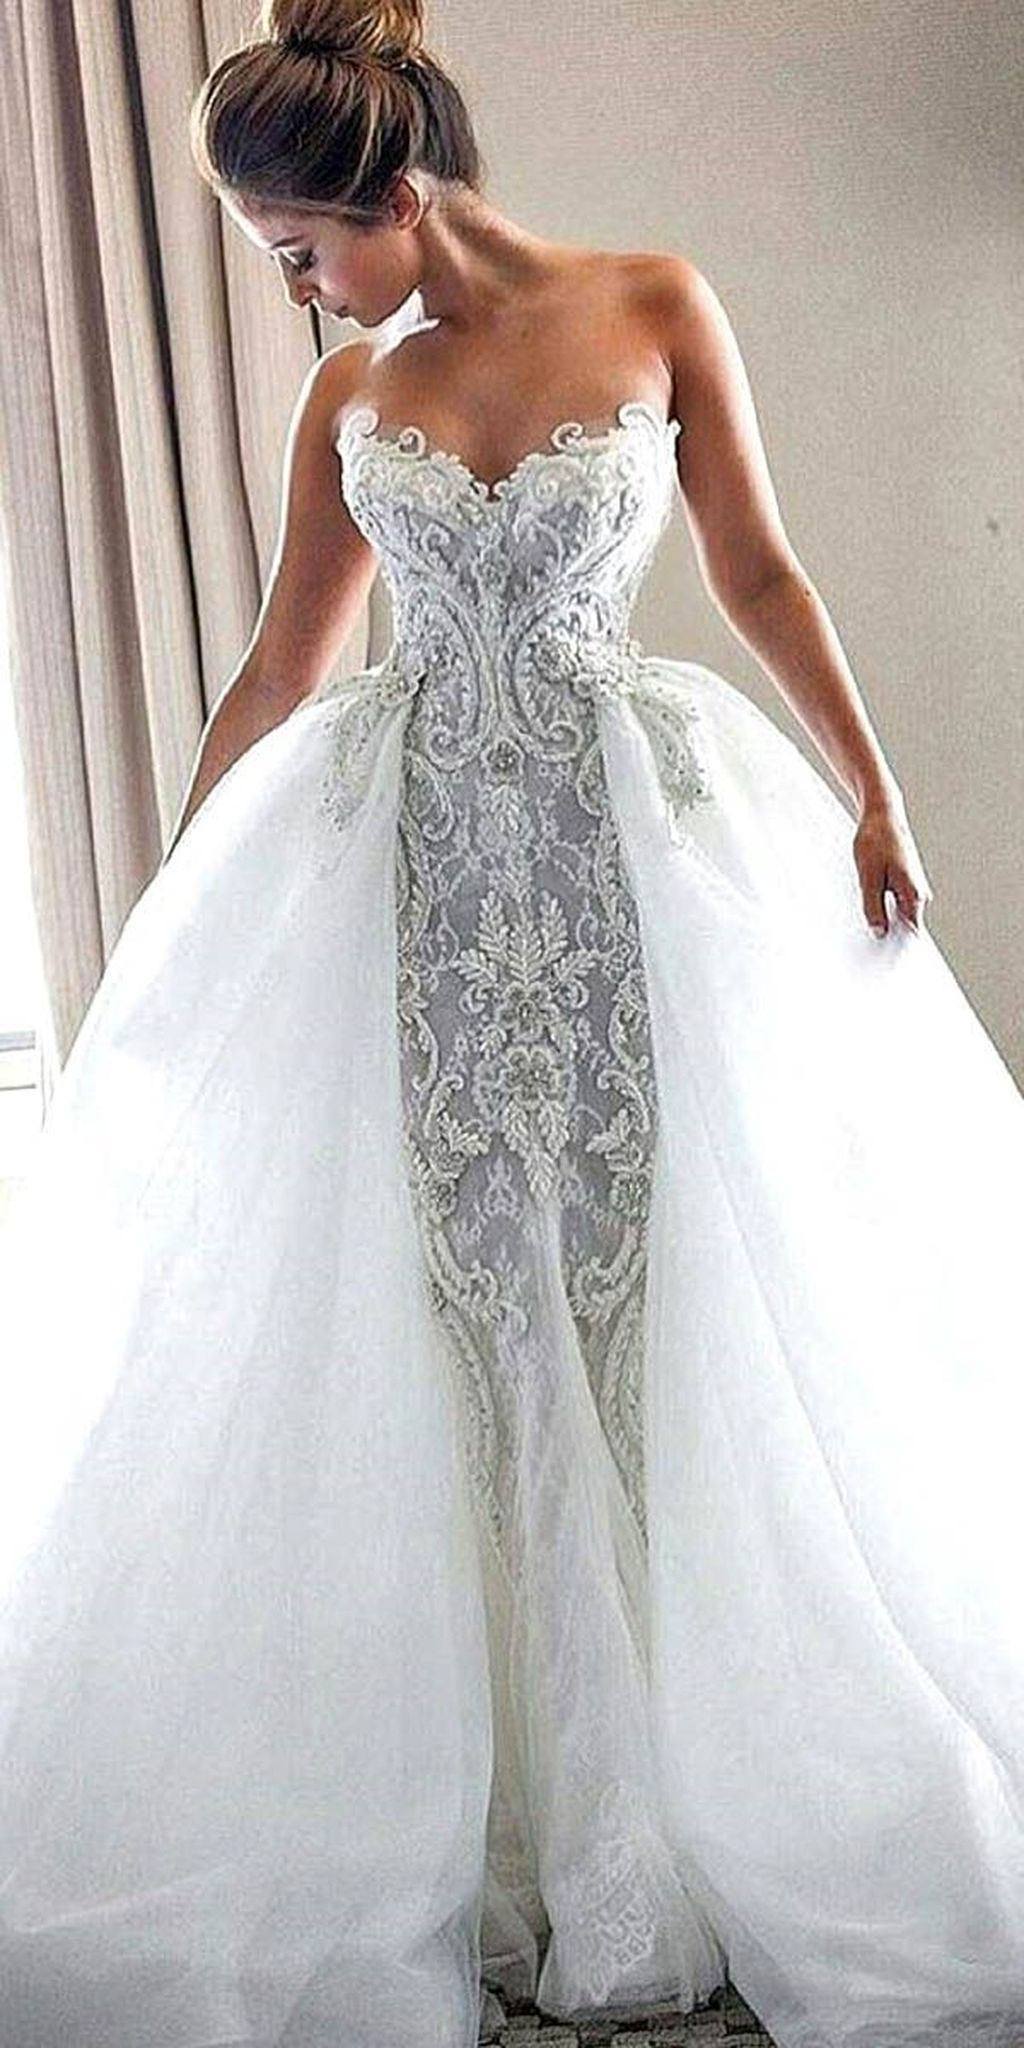 36 Stunning Unique Wedding Gown Inspirations Fashionmoe Wedding Dresses Vintage Lace Weddings Lace Wedding Dress Vintage